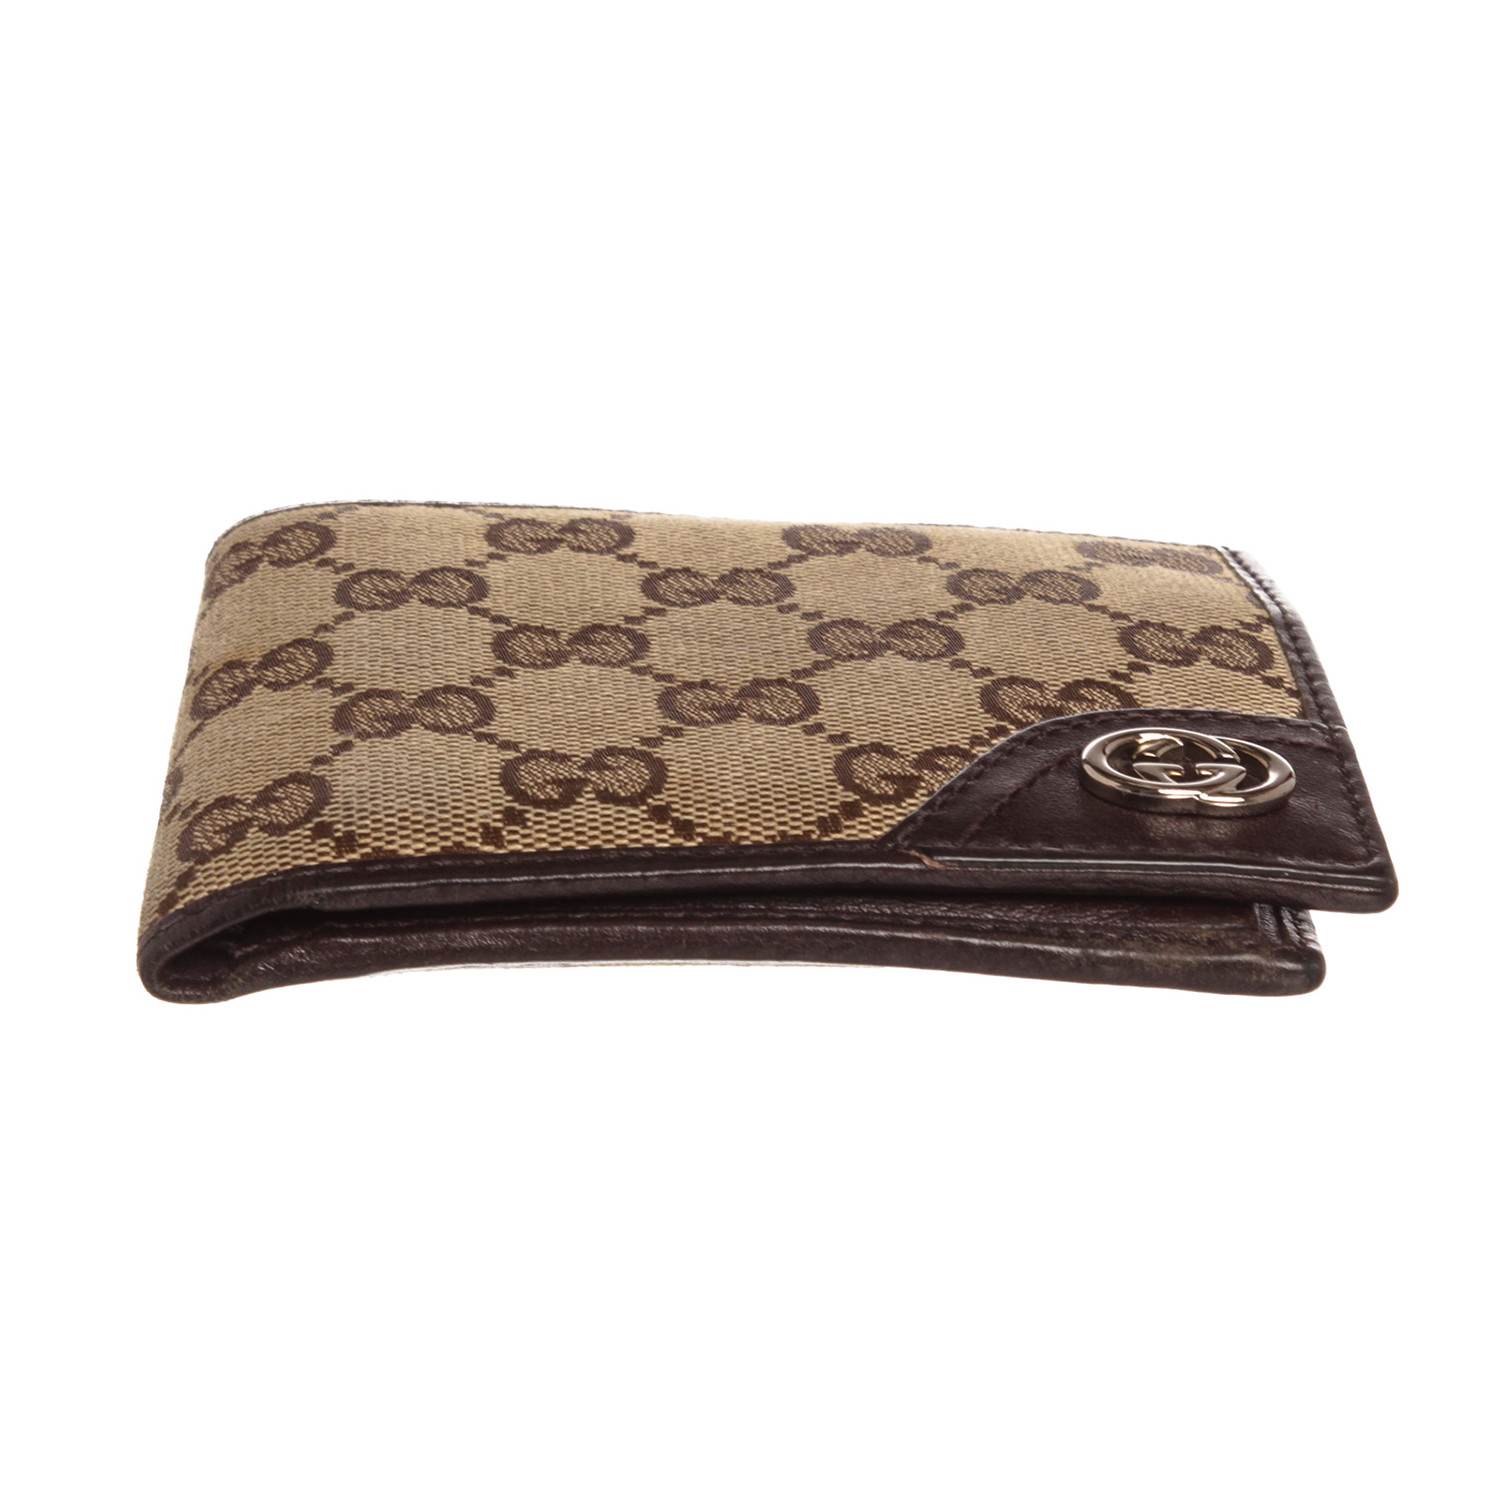 c259aaa2ed0800 Gucci // Beige Tan GG Canvas Leather Trim Bifold Wallet // 1816712067 //